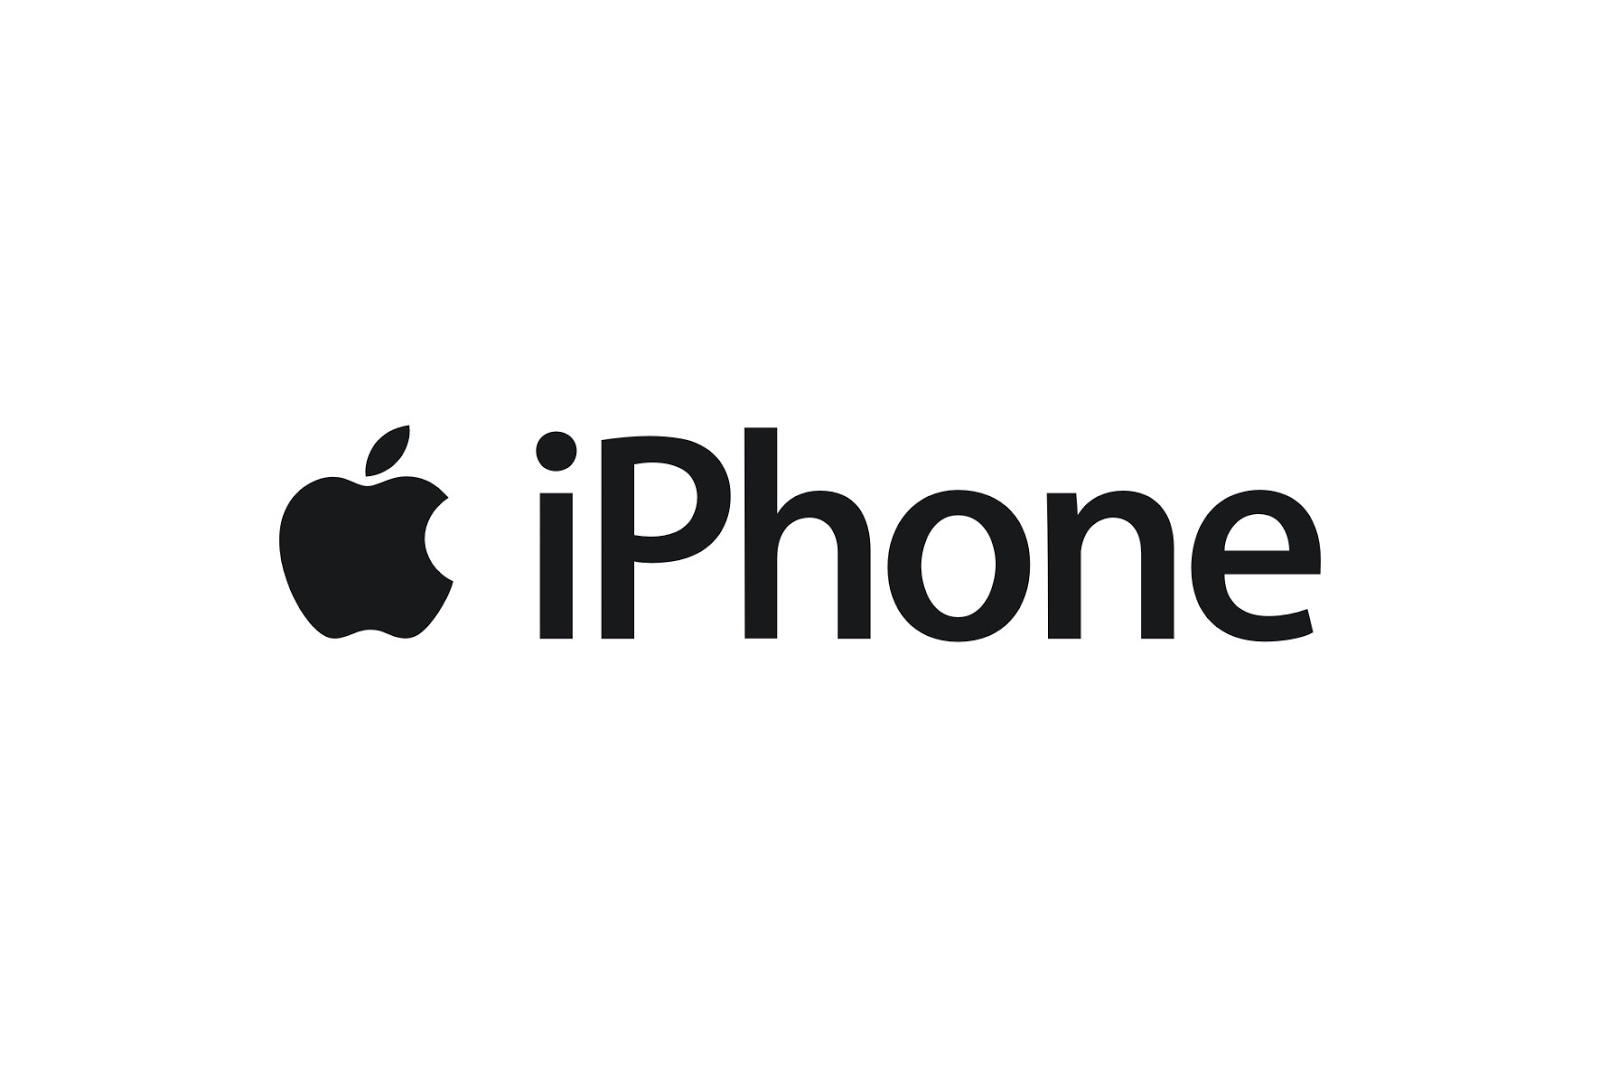 pin Iphone clipart iphone mobile logo #13 - Iphone 6s Logo Vector PNG